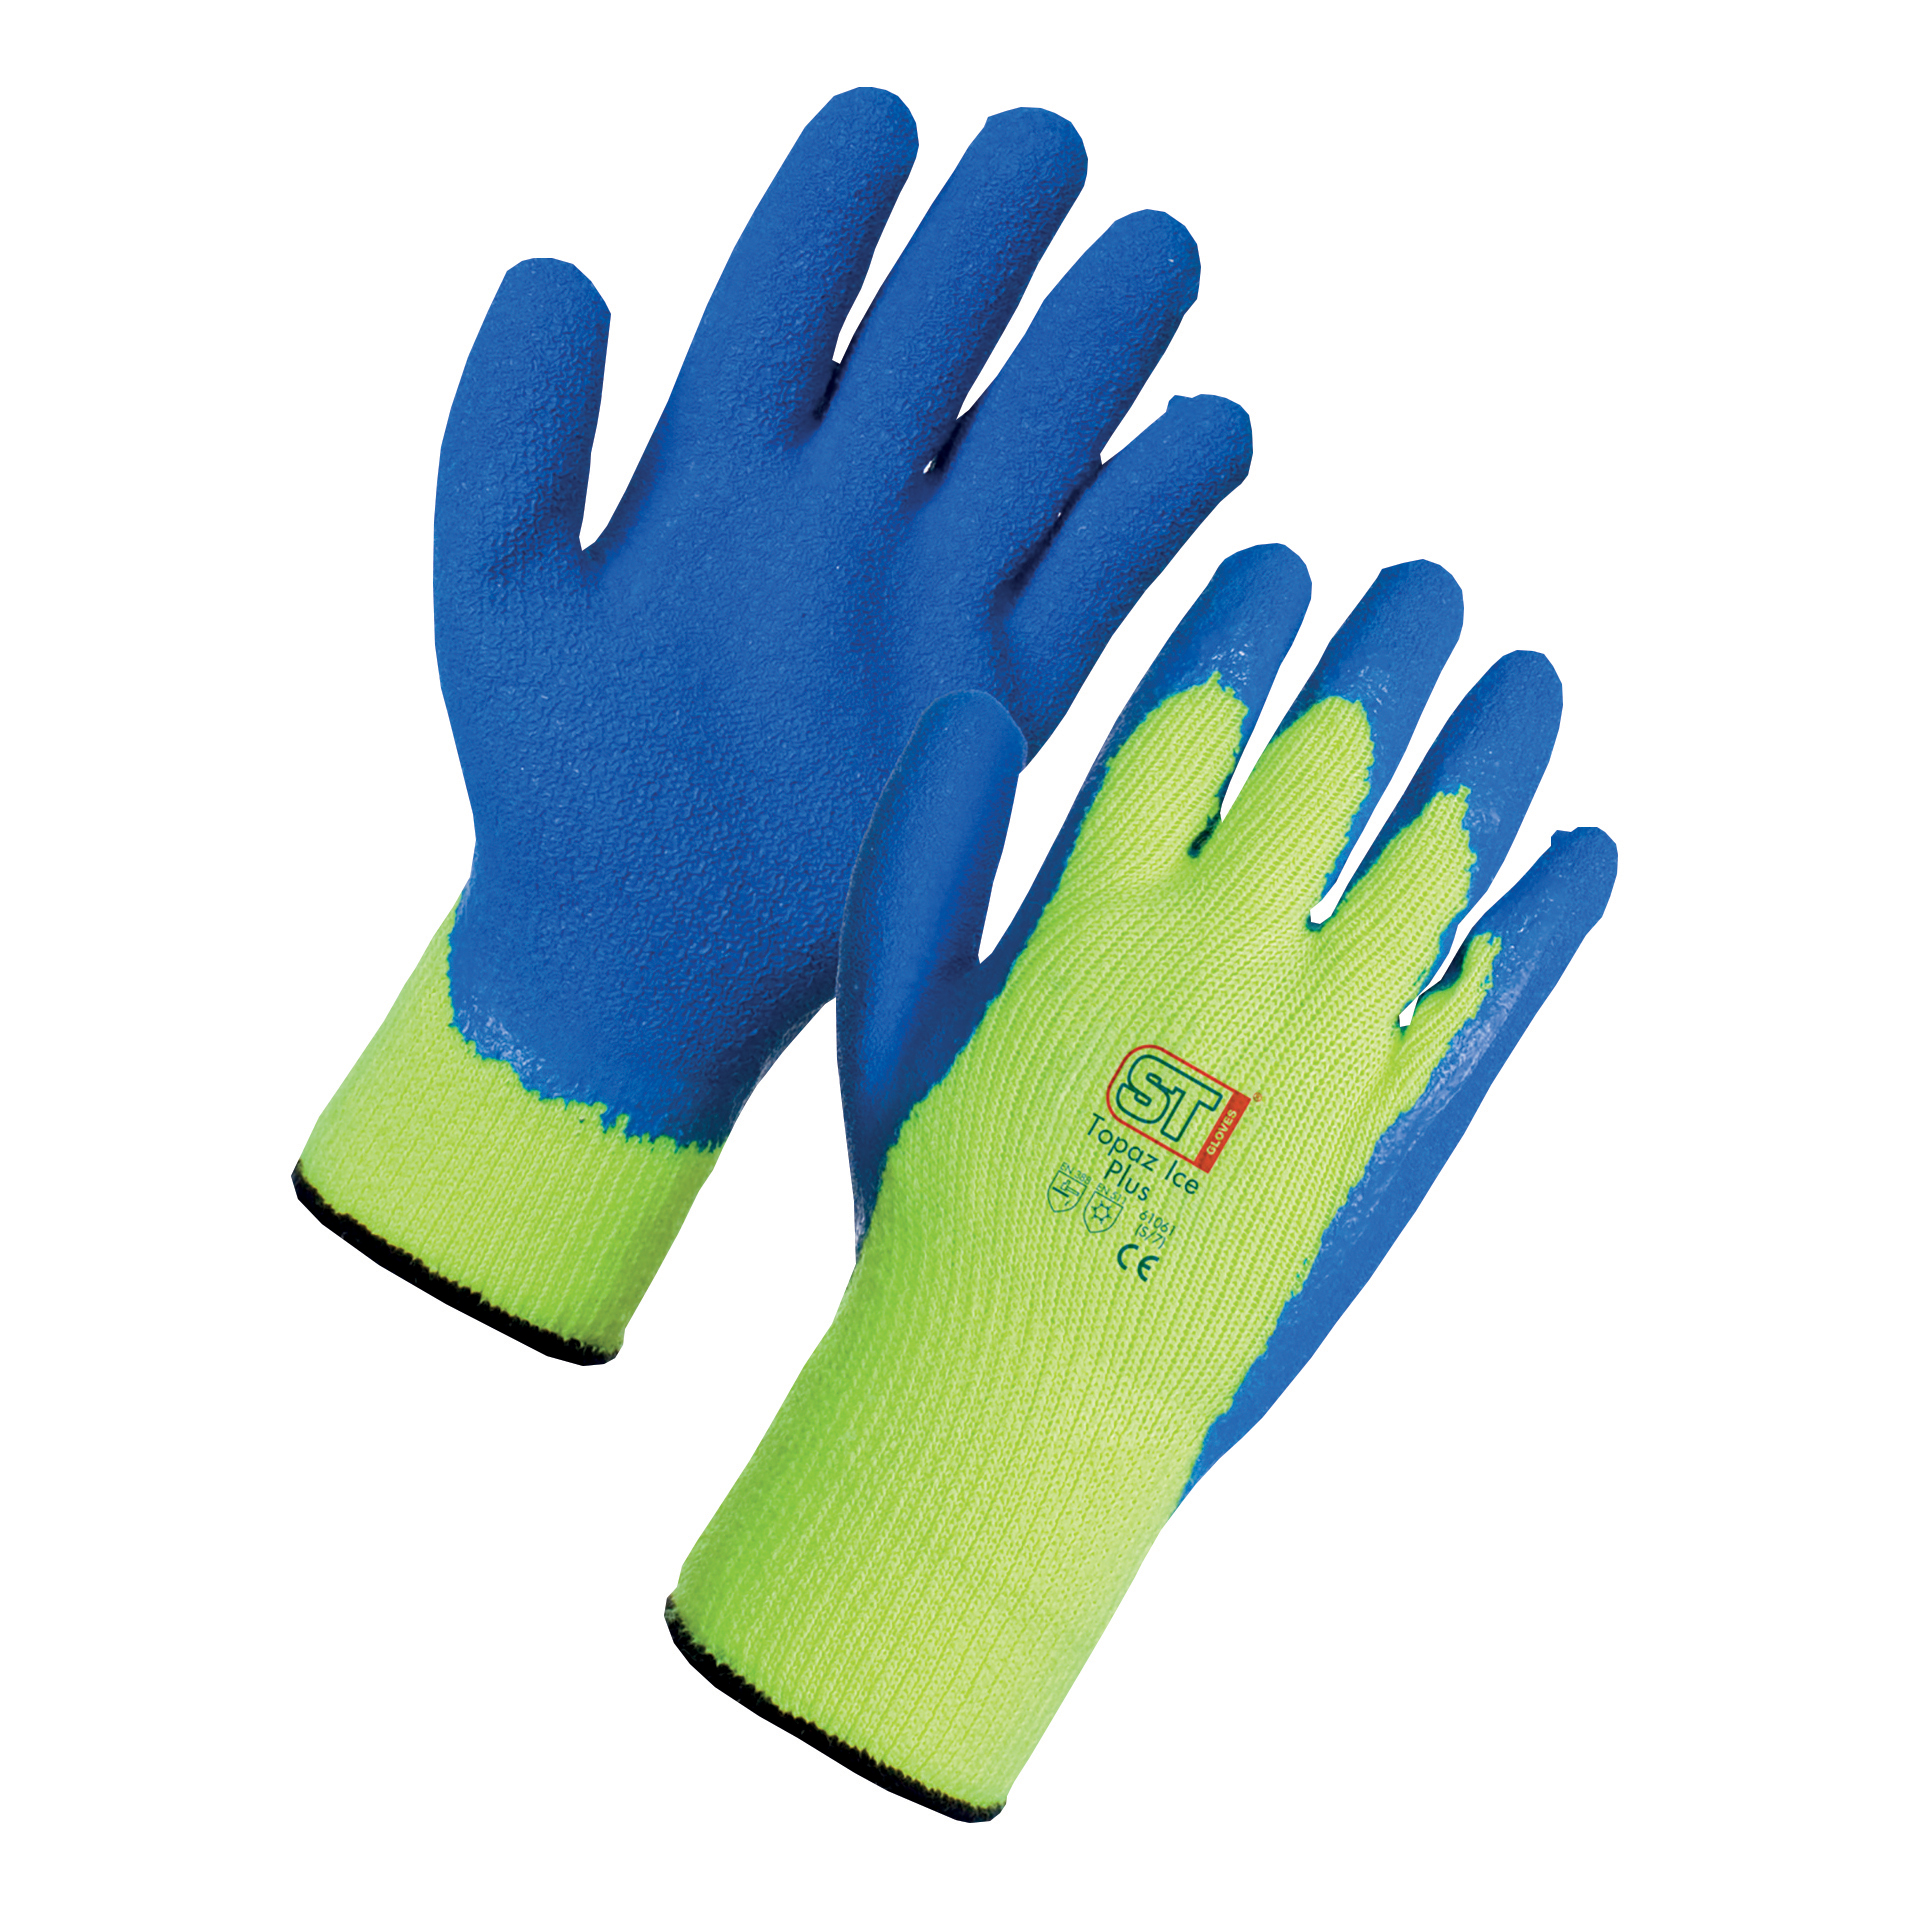 Supertouch Topaz Ice Plus Gloves Acrylic Textured Latex Palm Large Ref 61063 [Pair]